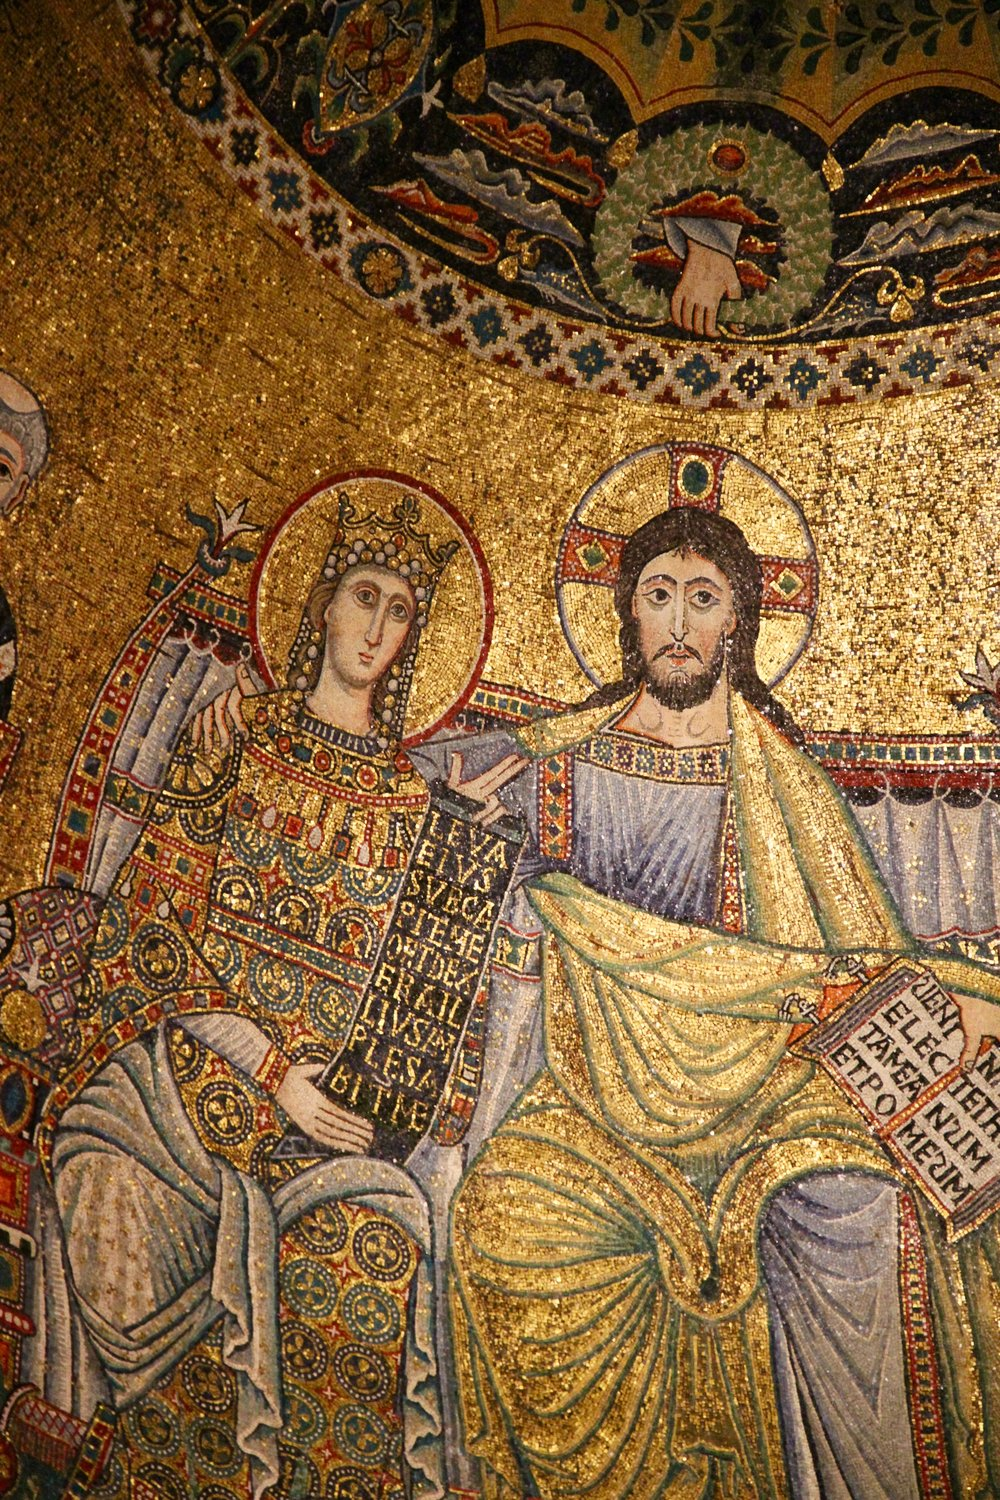 Christ and Mary as Byzantine emperor and empress